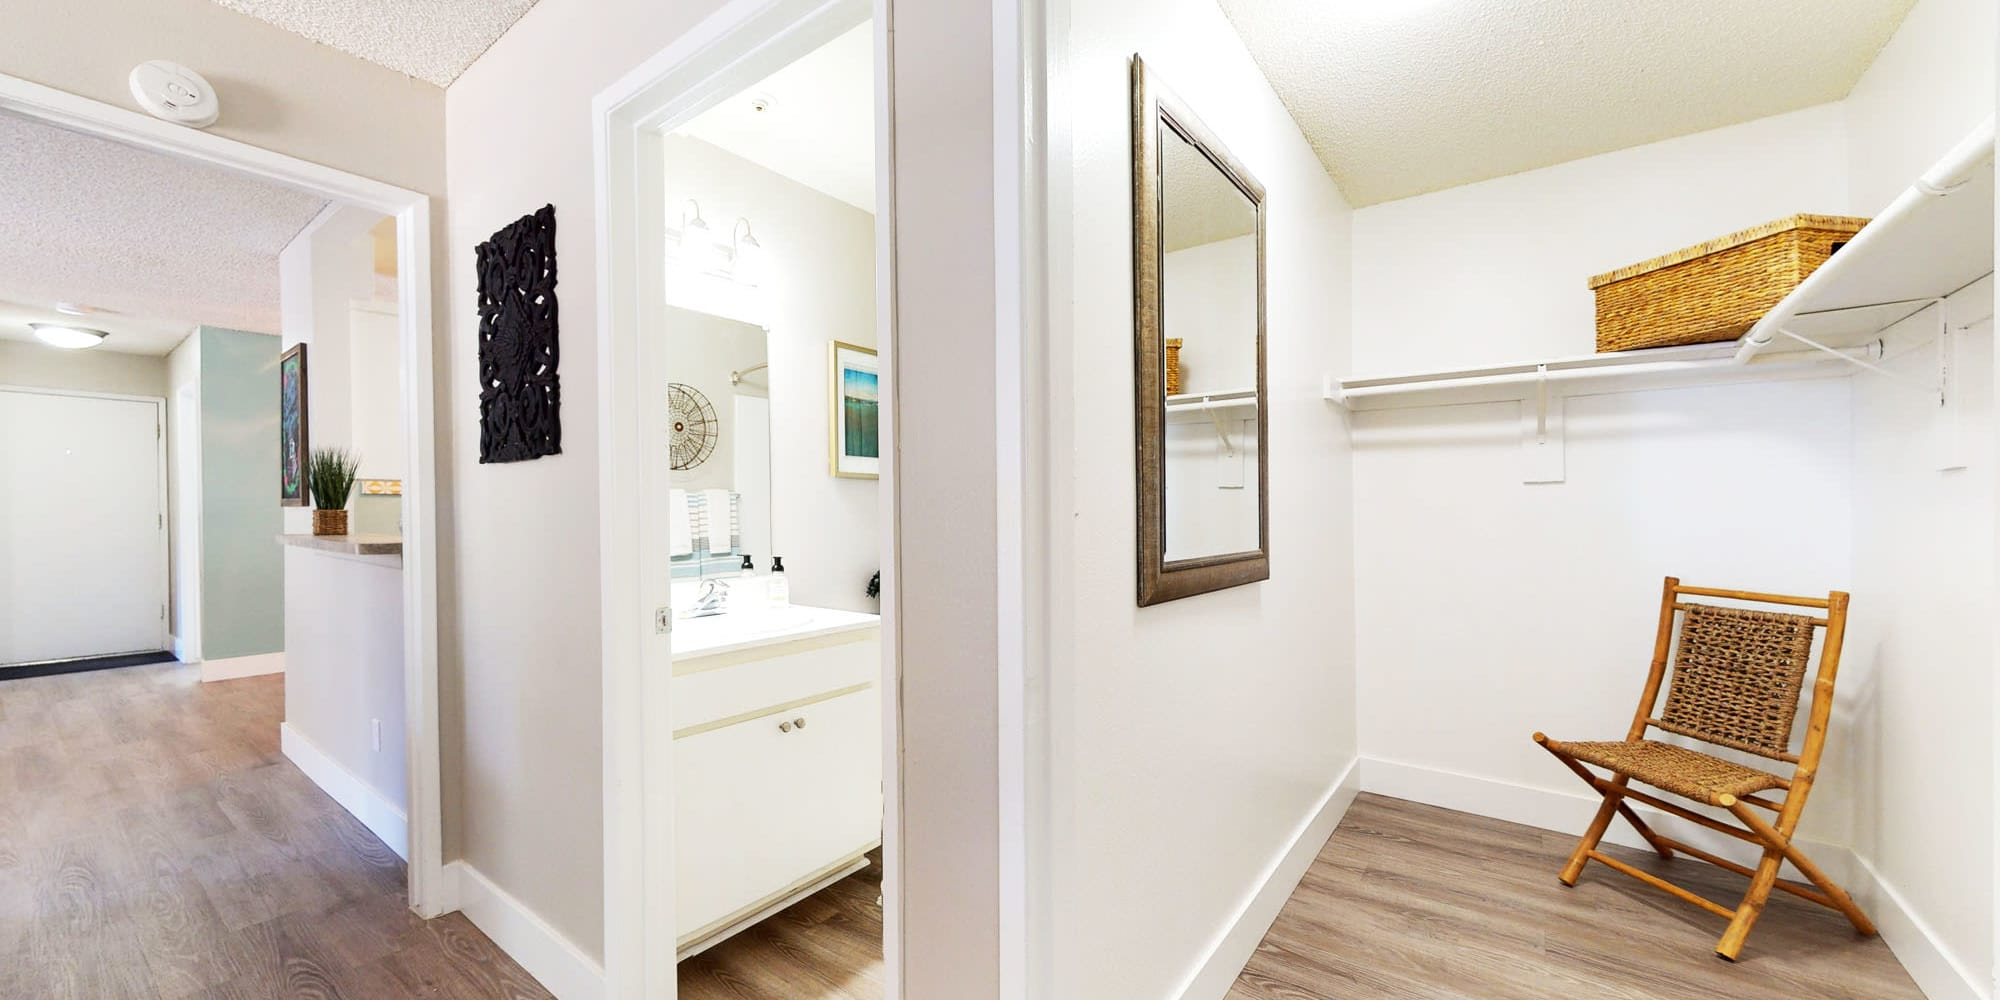 Large walk-in closet next to the bathroom in a model home with hardwood flooring throughout at Mountain Vista in Victorville, California